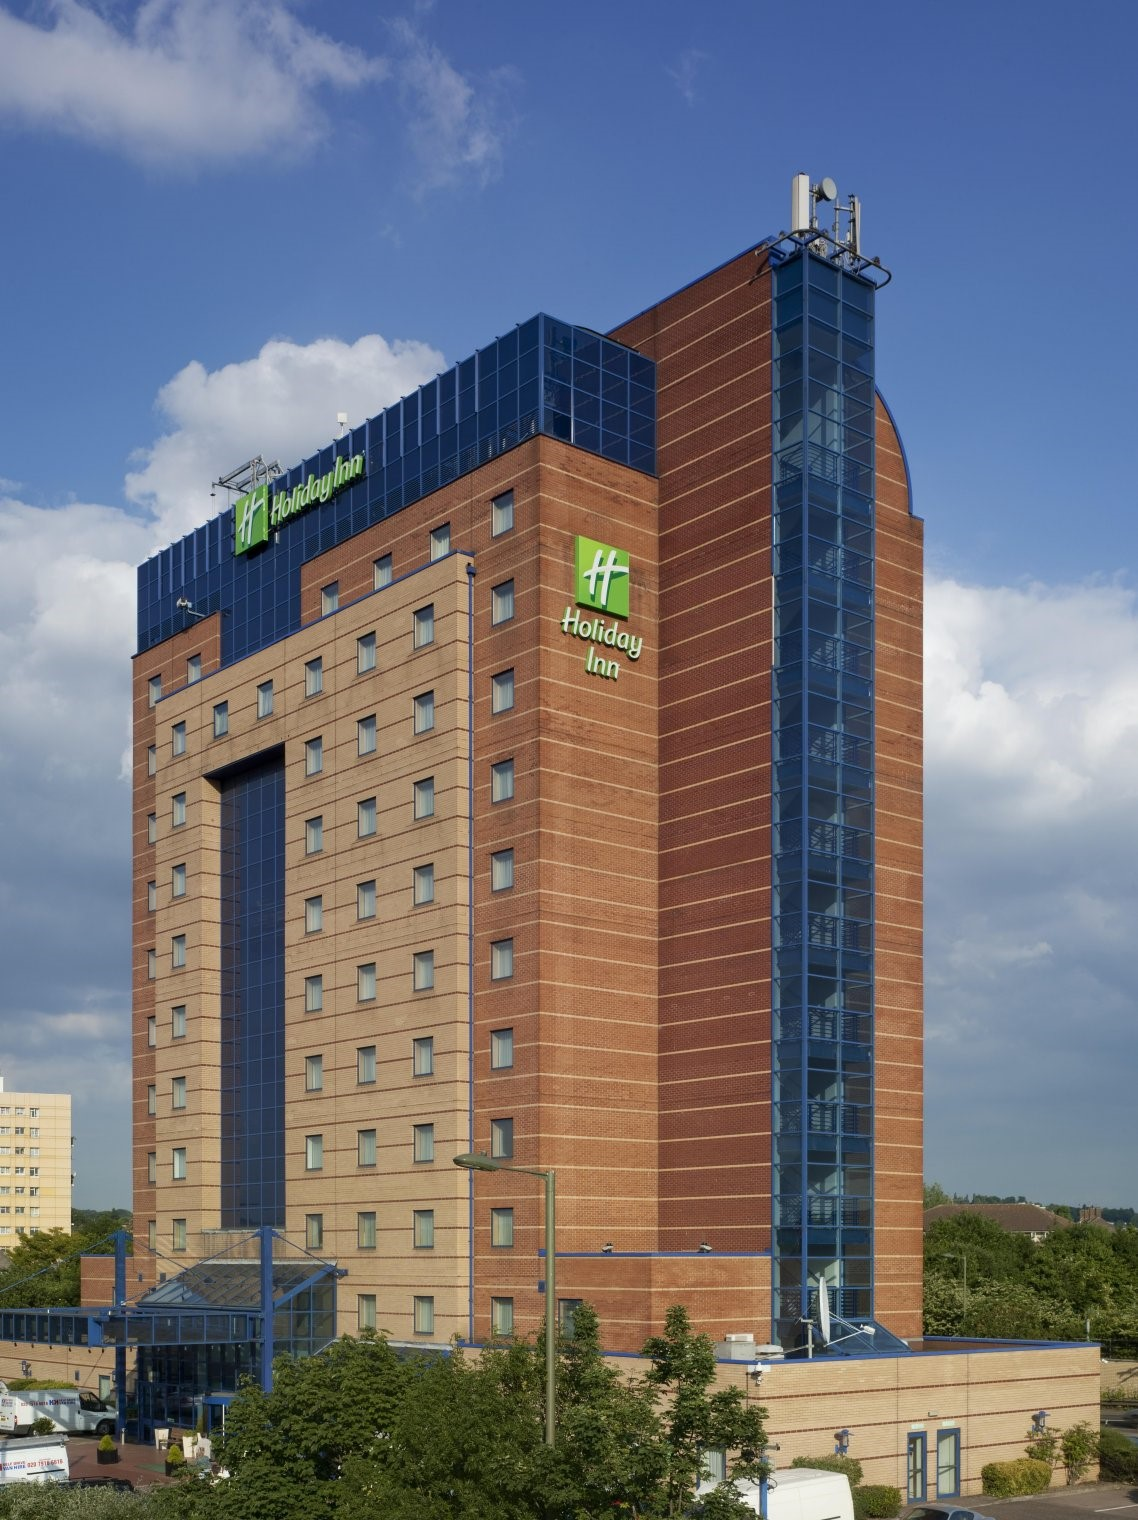 Picture of Holiday Inn London Brent Cross